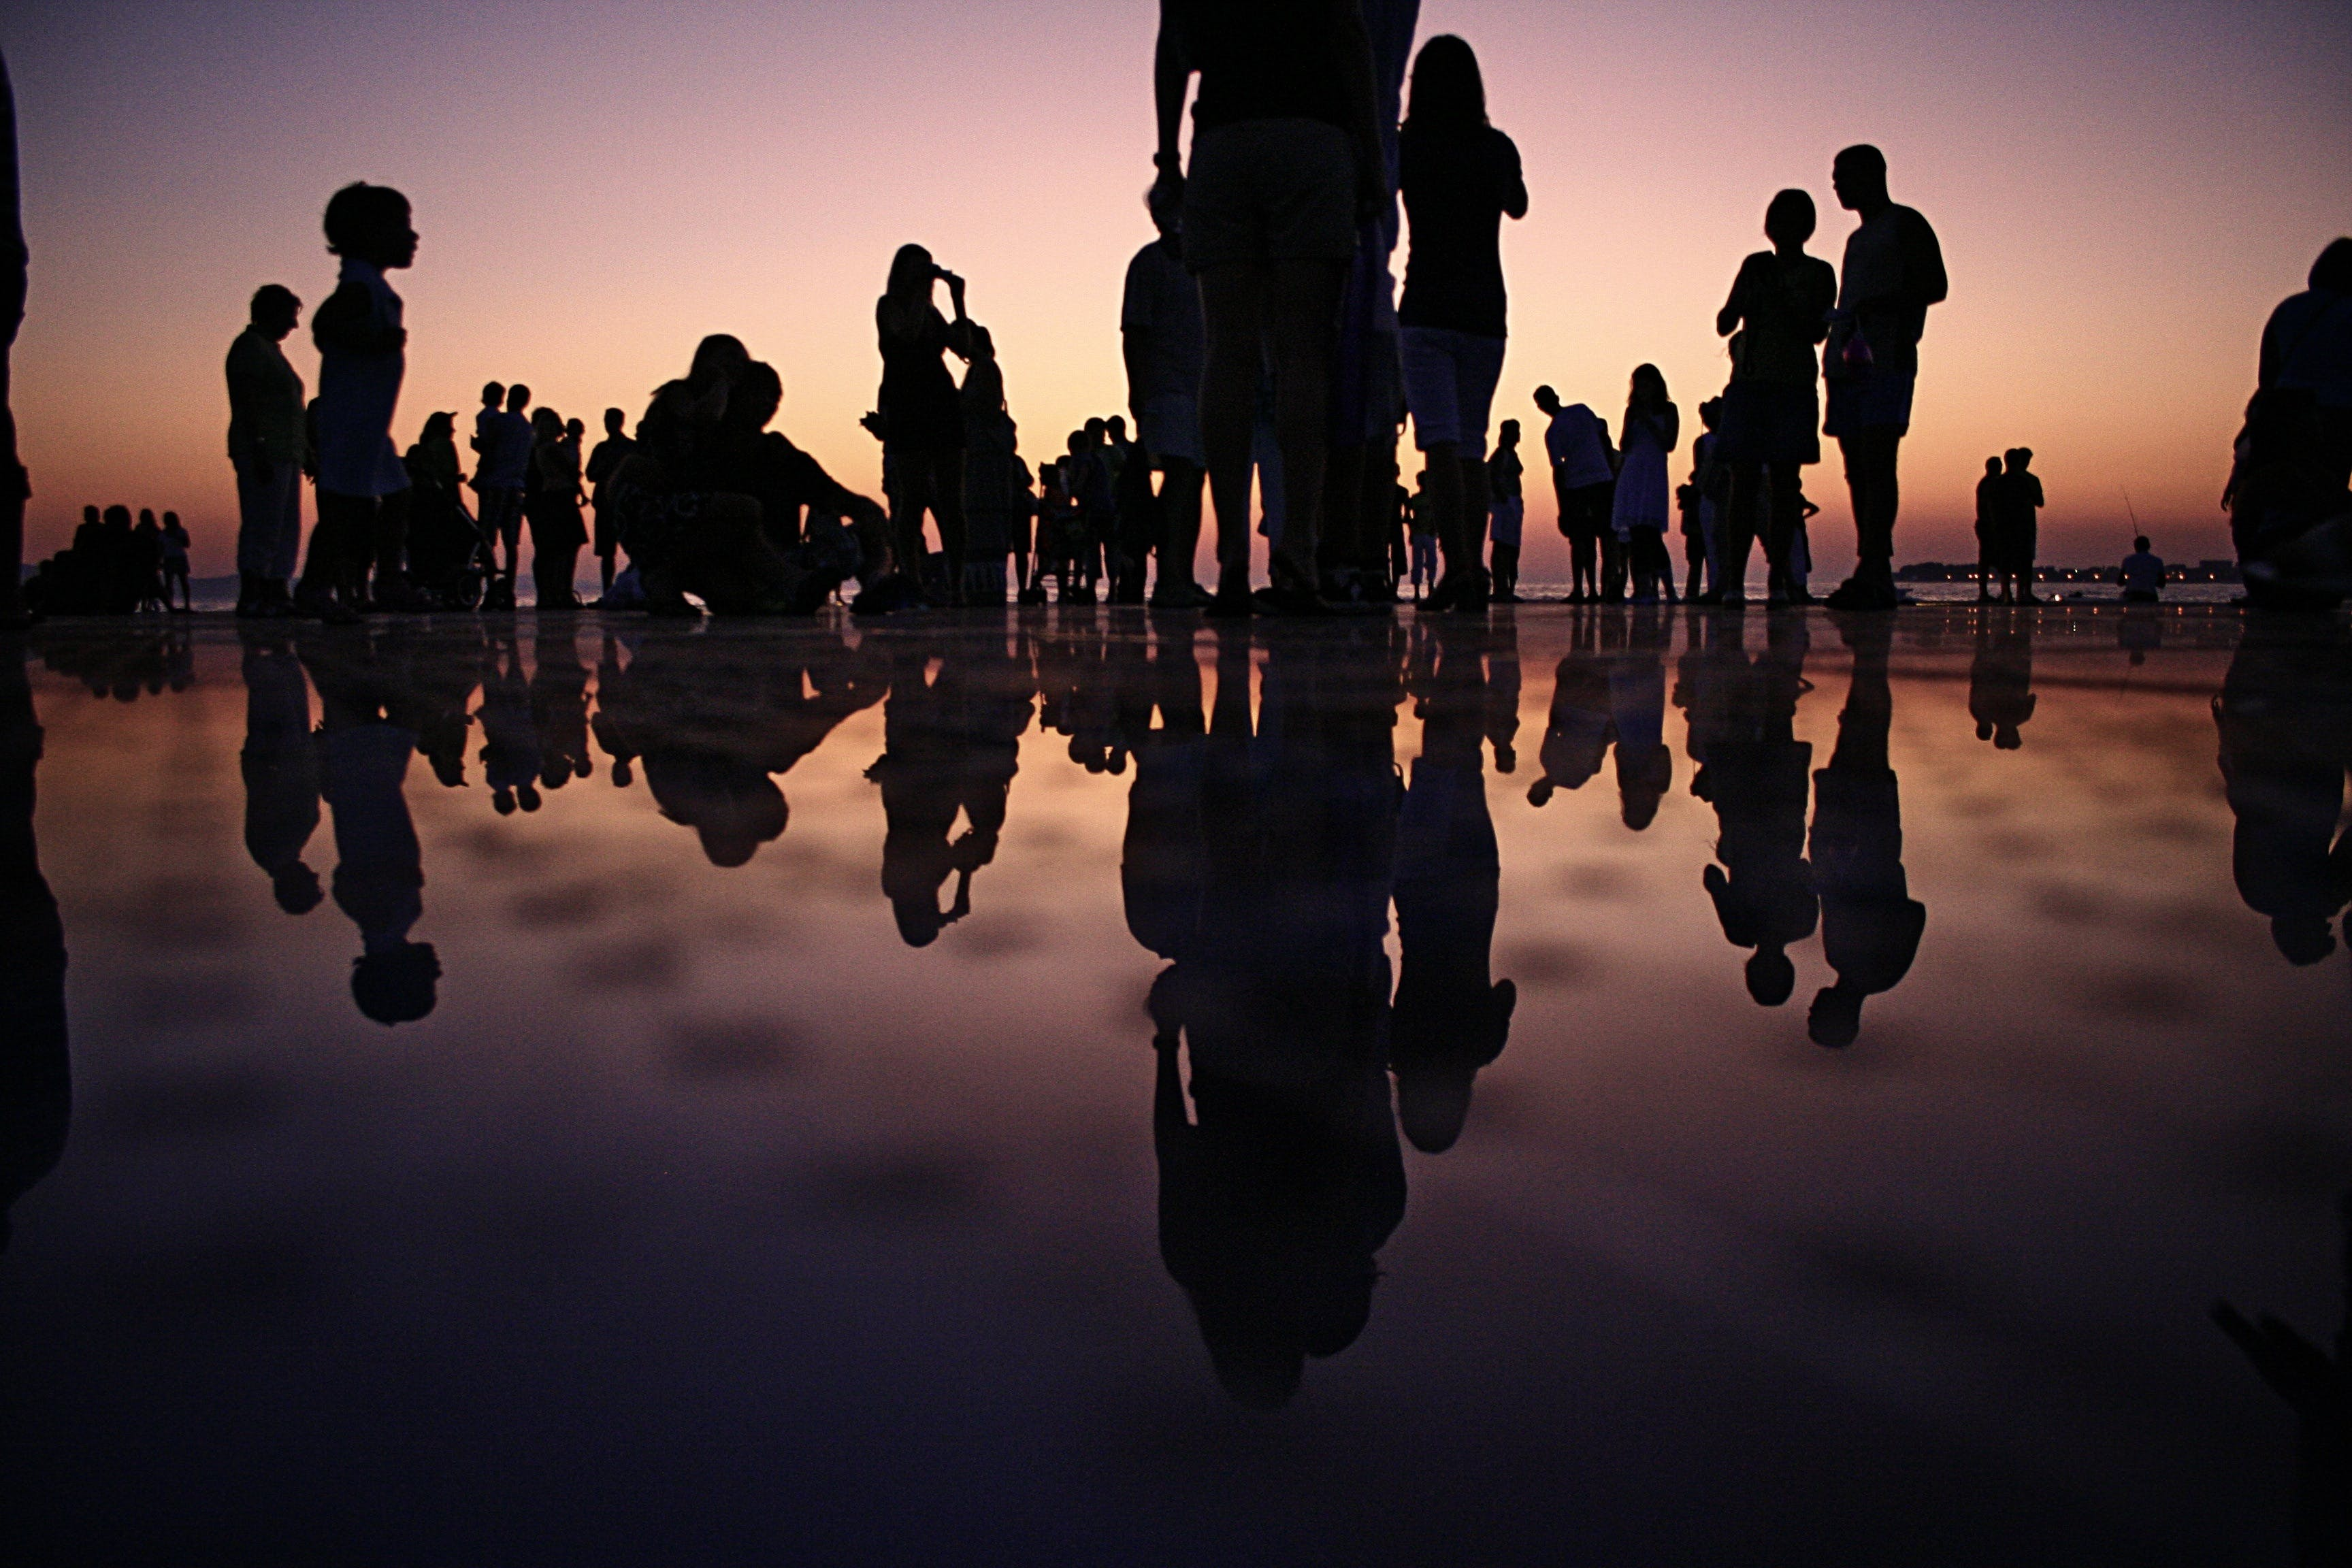 Free stock photo of sunset, people, crowd, reflections